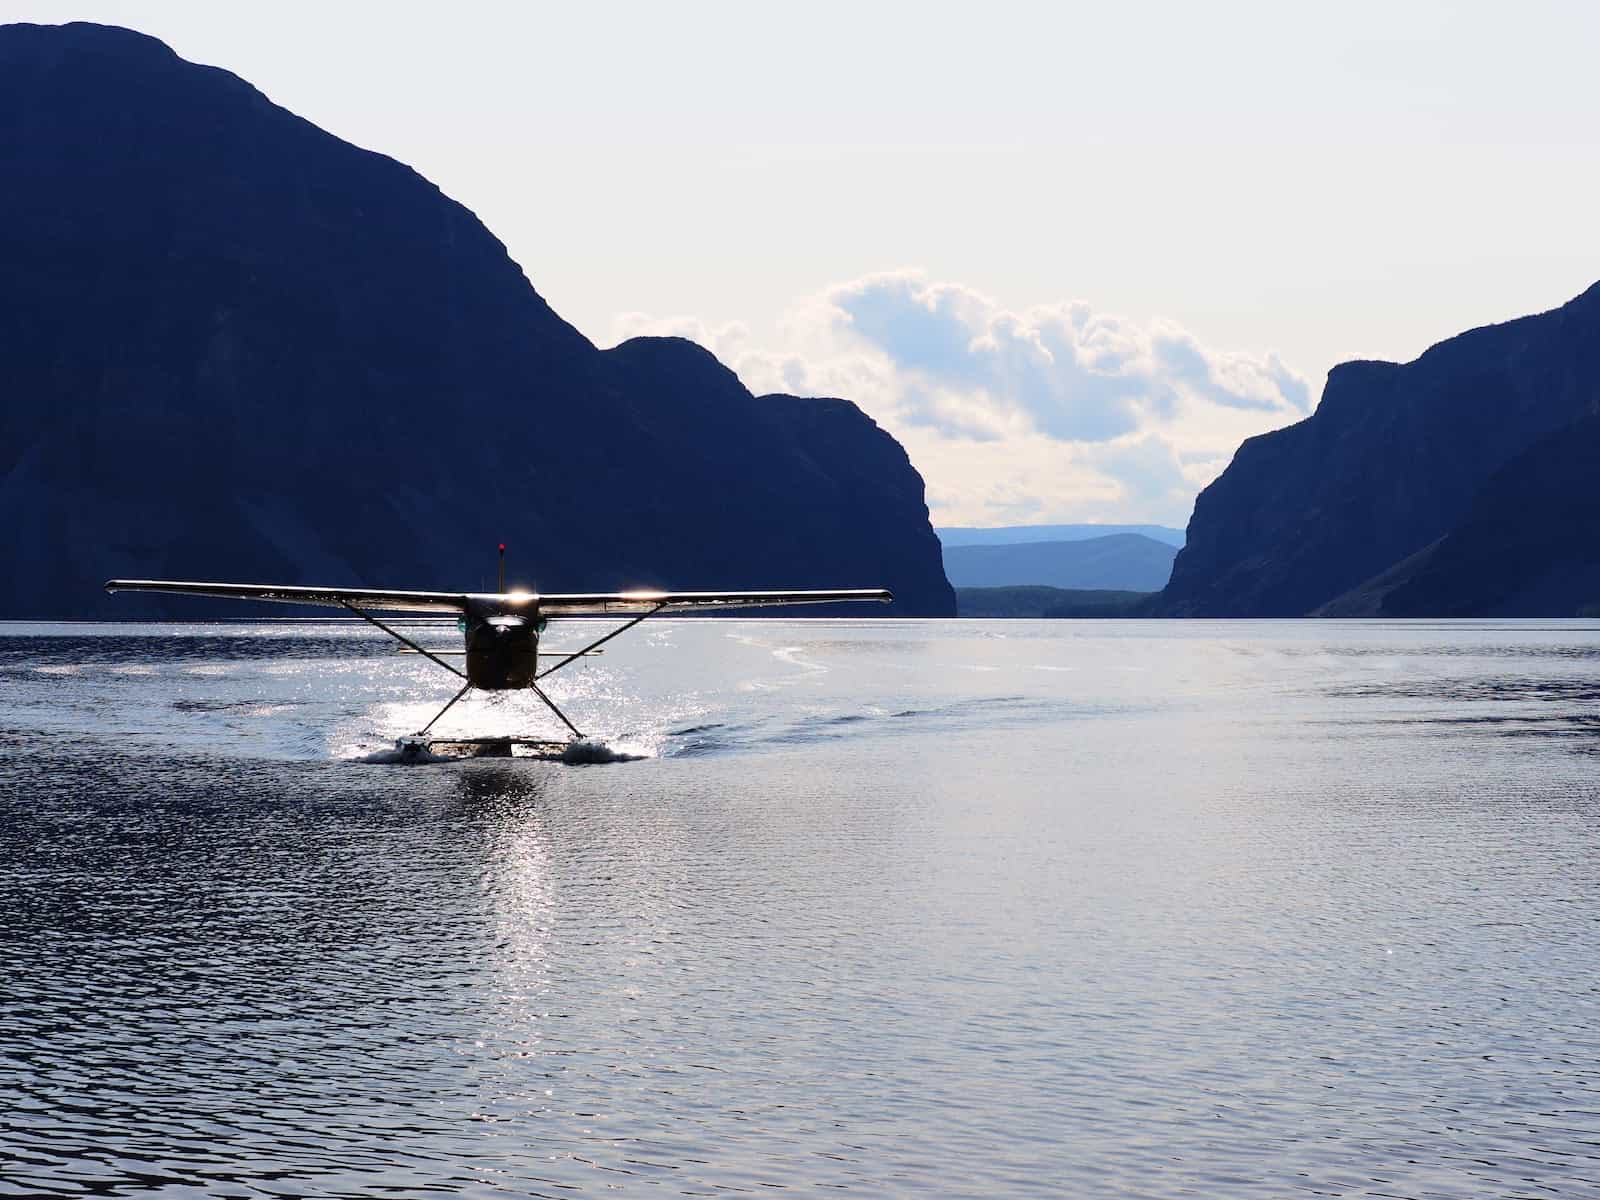 Nahanni River by Canoe: The Cessna coming into Little Doc Lake